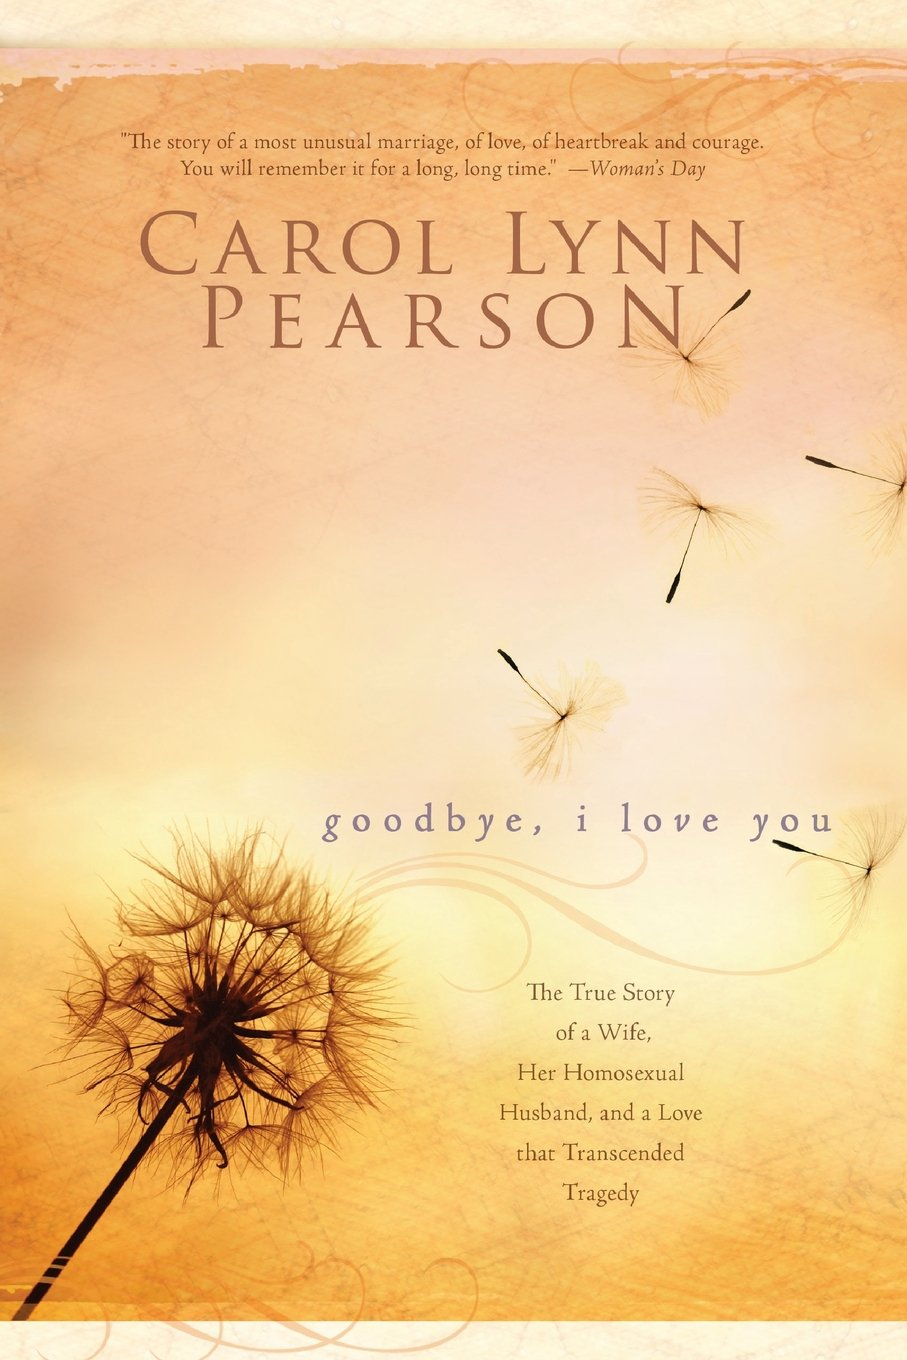 Goodbye, I Love You: Carol Lynn Pearson: 9781555179847: Amazon.com: Books